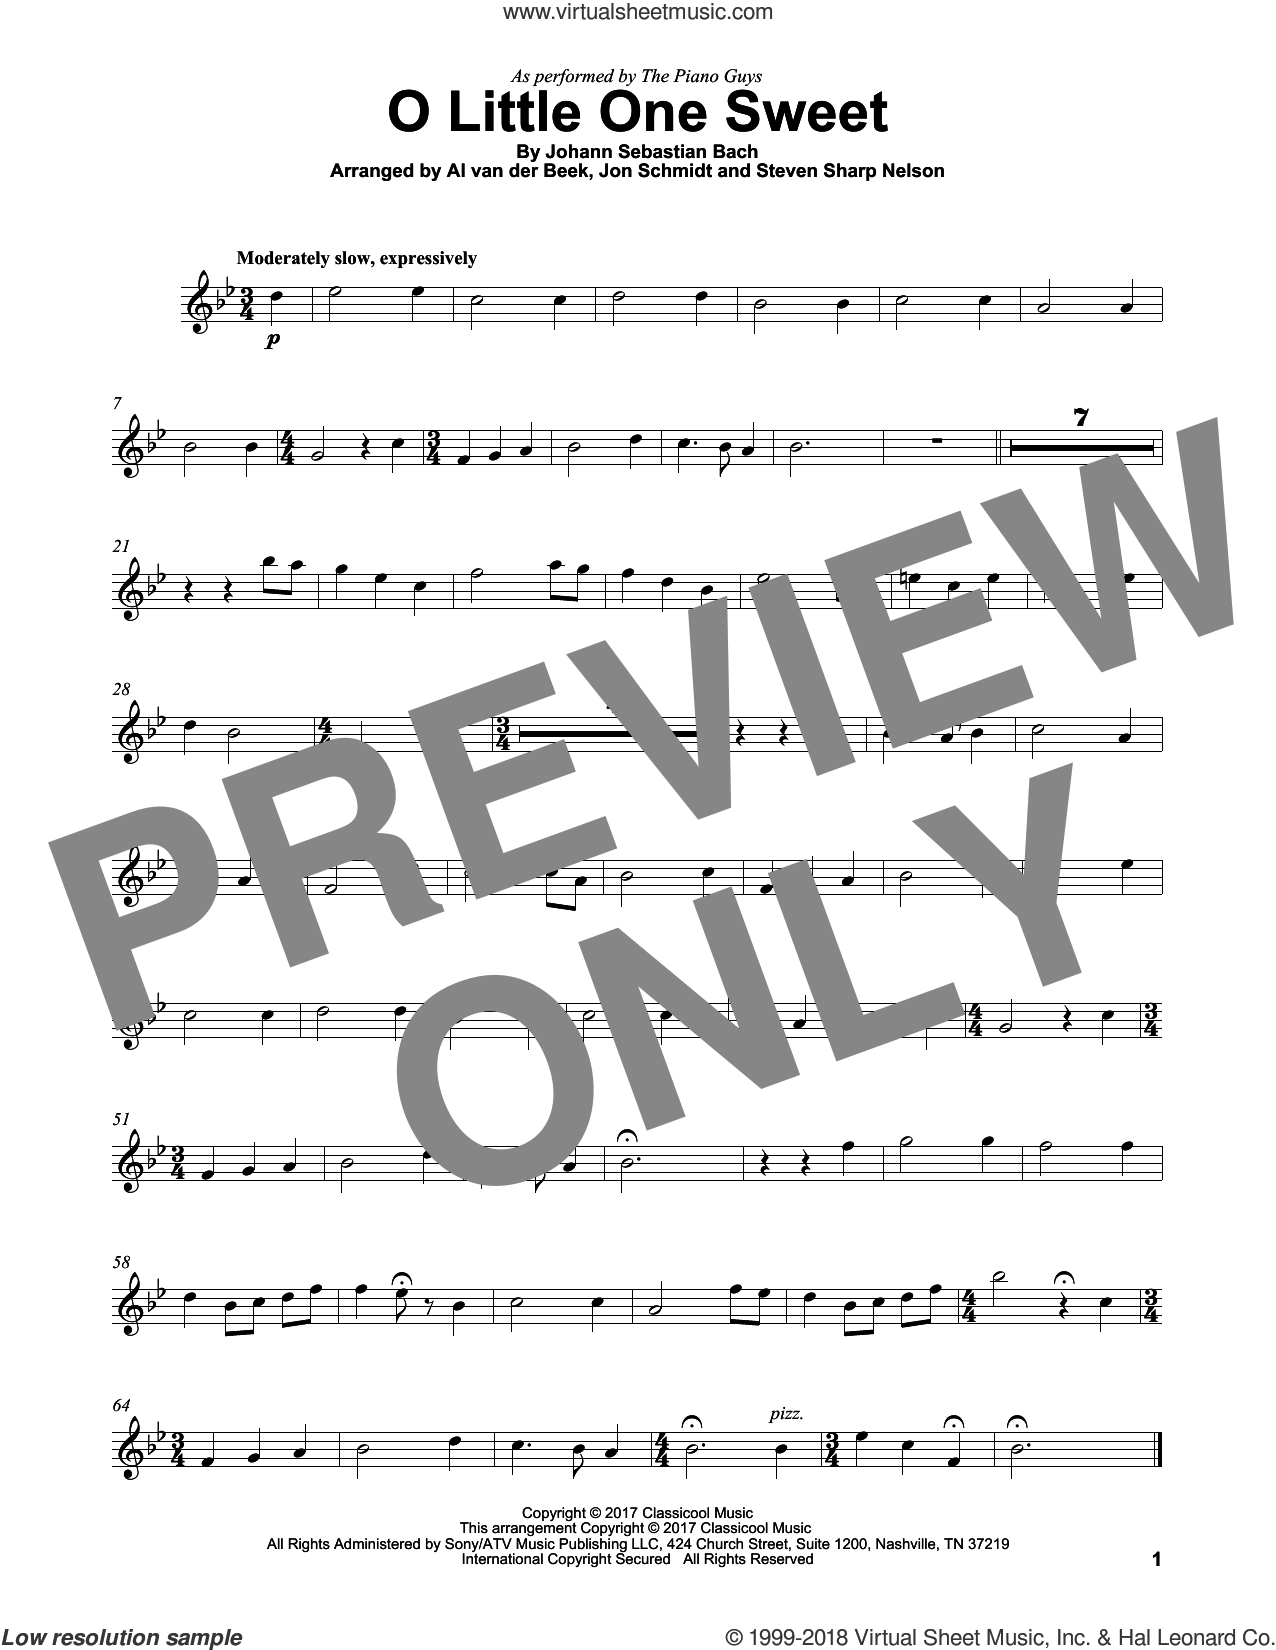 O Little One Sweet sheet music for violin solo by The Piano Guys, Al van der Beek, Johann Sebastian Bach and Steven Sharp Nelson (arr.), intermediate skill level